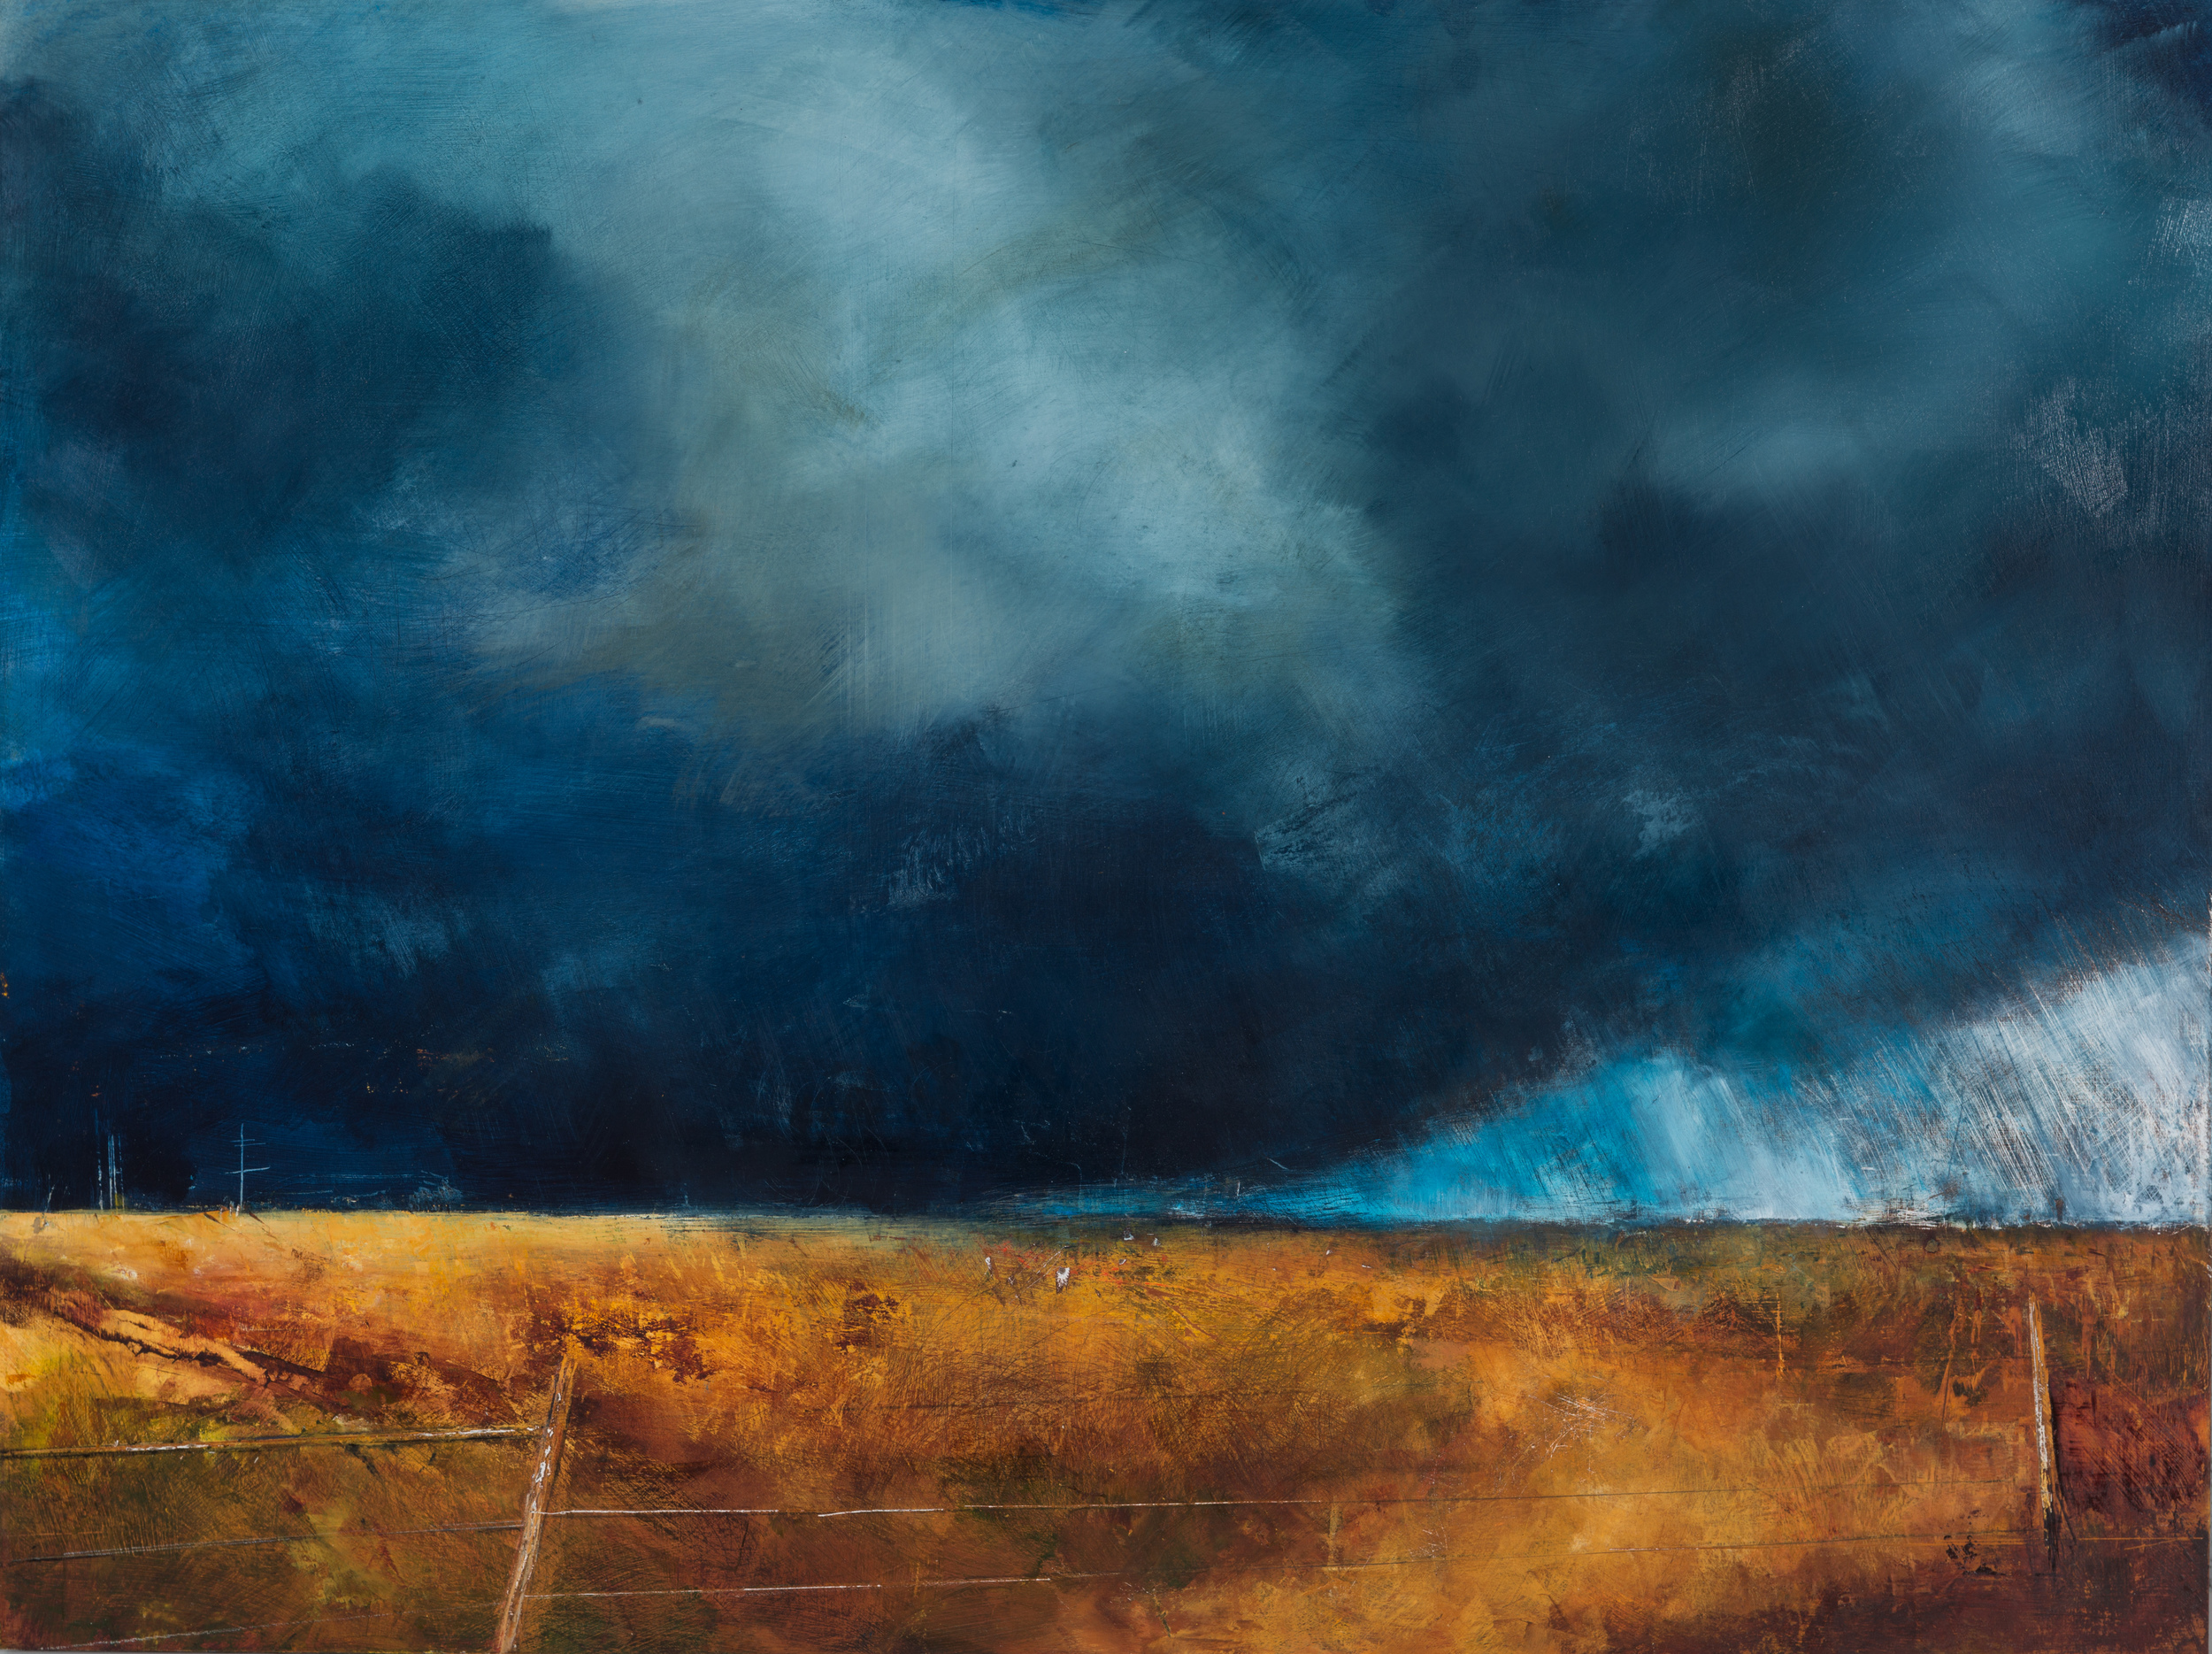 BW-043, Prairie:Extreme Weather, 2014, oil on wood panel, 24x18.jpg